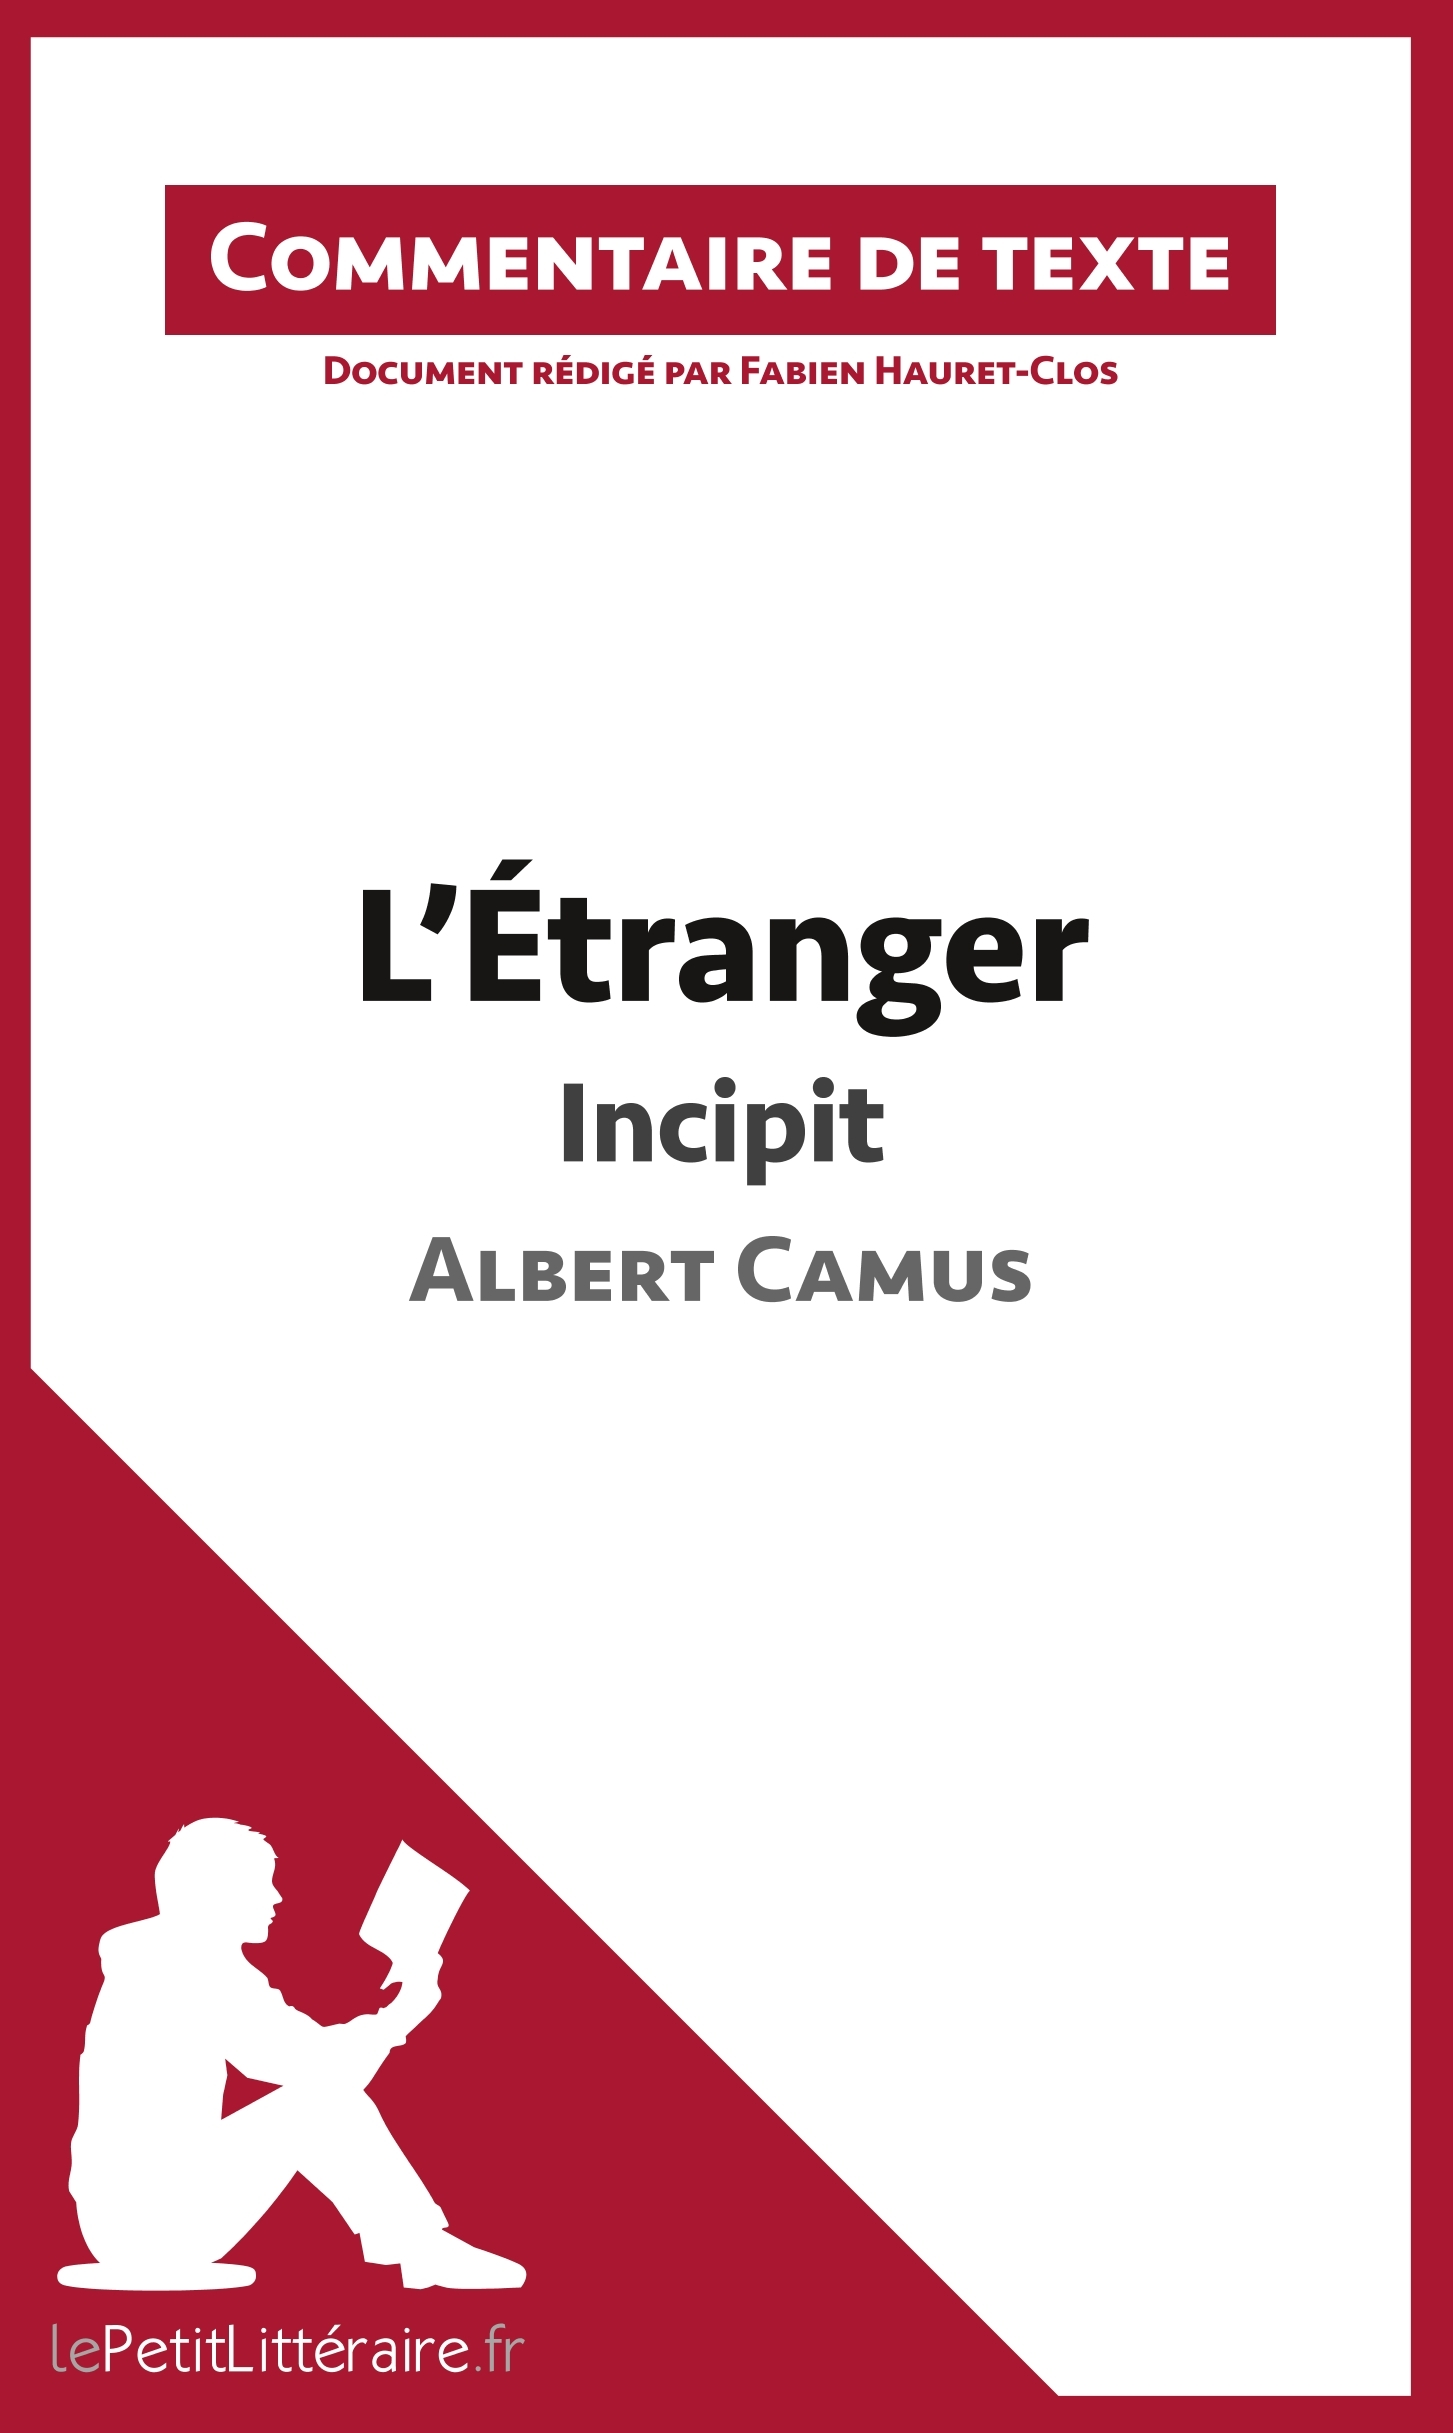 COMMENTAIRE COMPOSE L ETRANGER DE CAMUS INCIPIT